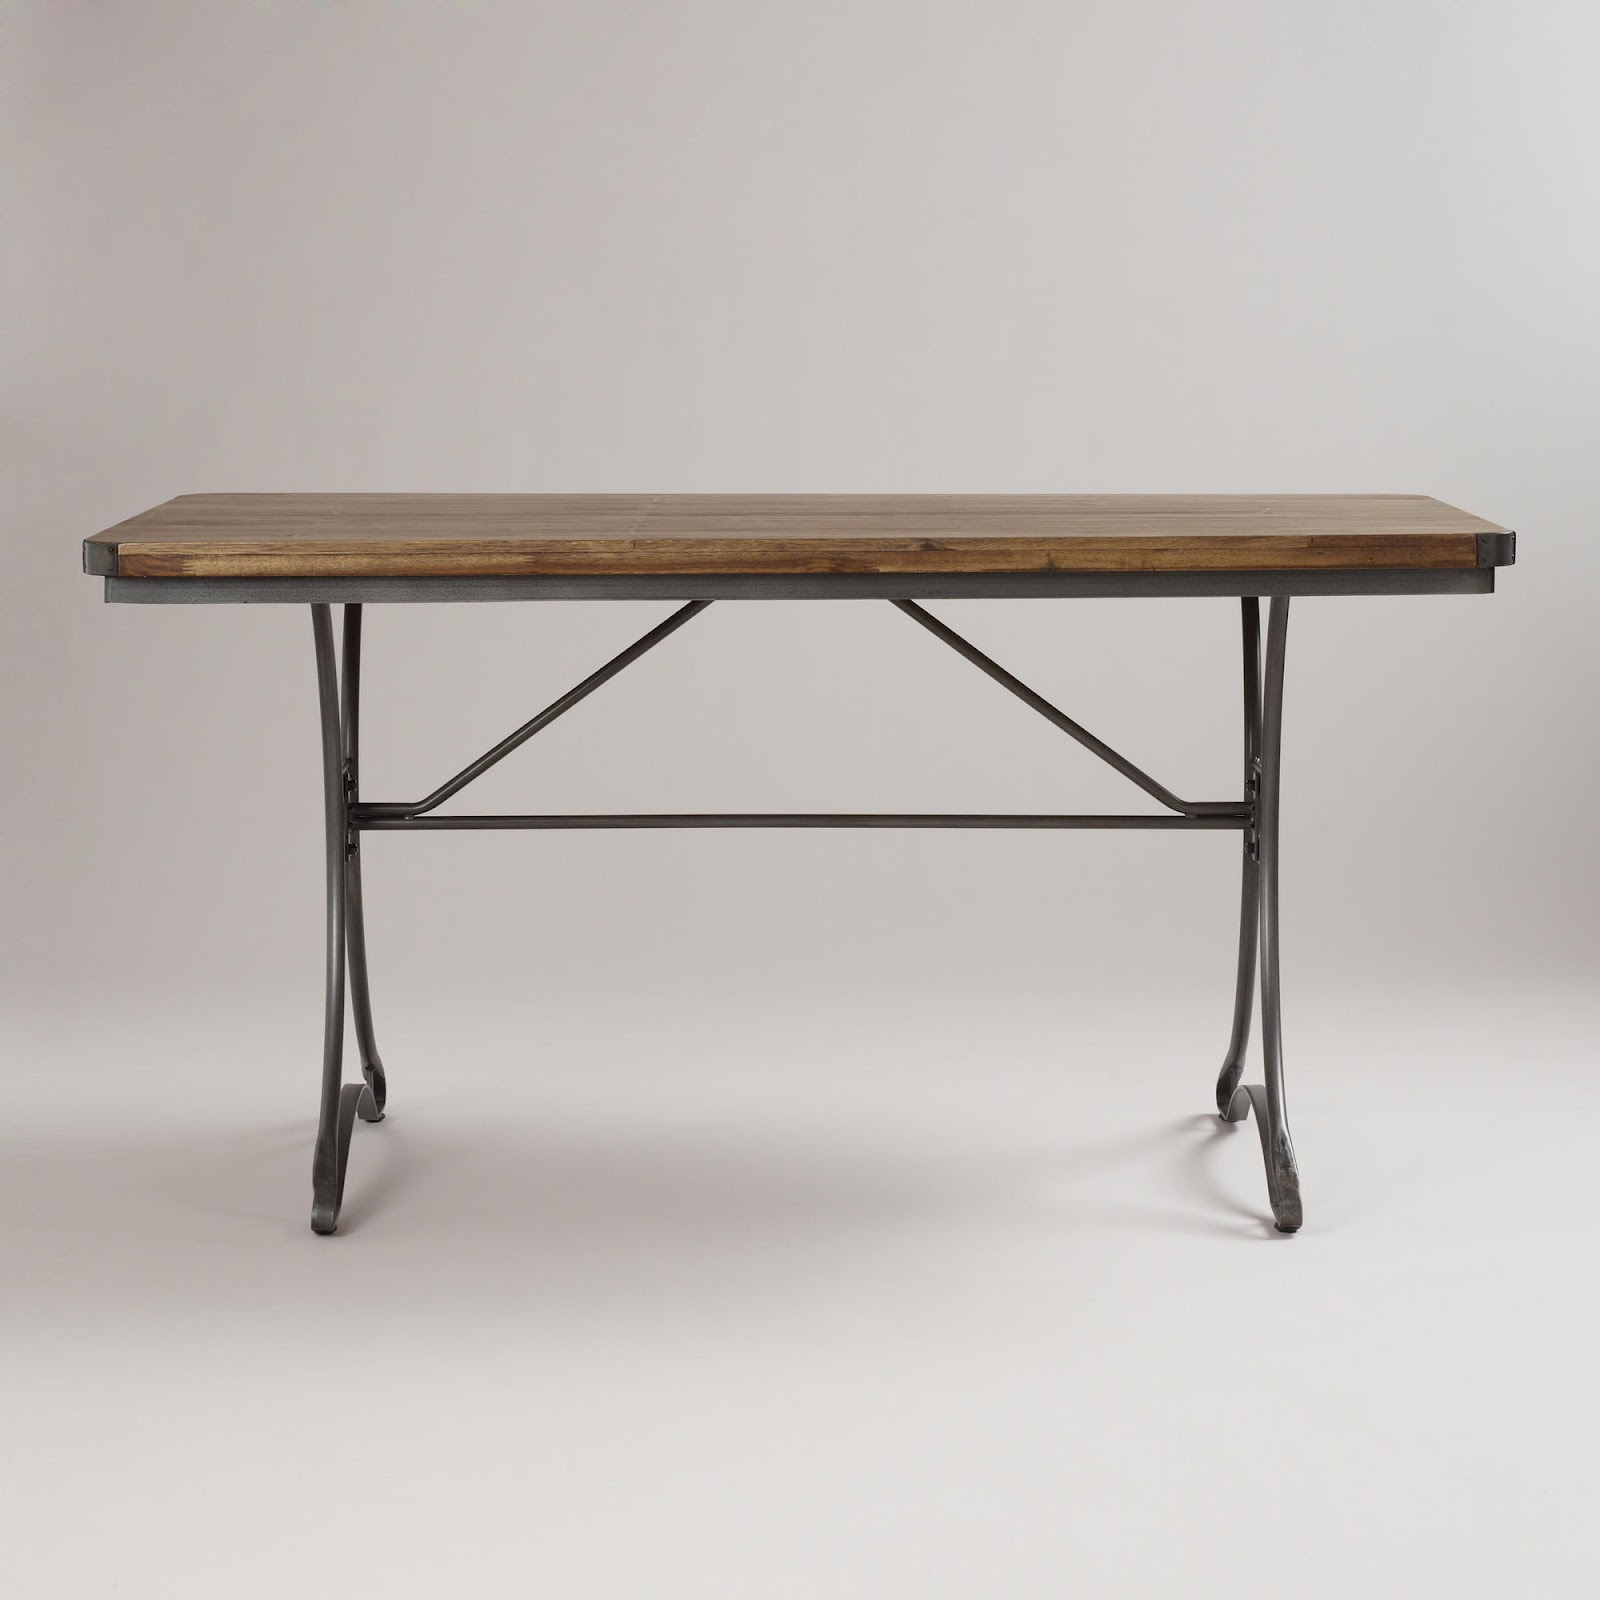 Jackson Rectangular Table With Metal Base: Birds Of A Feather: 08/01/2012